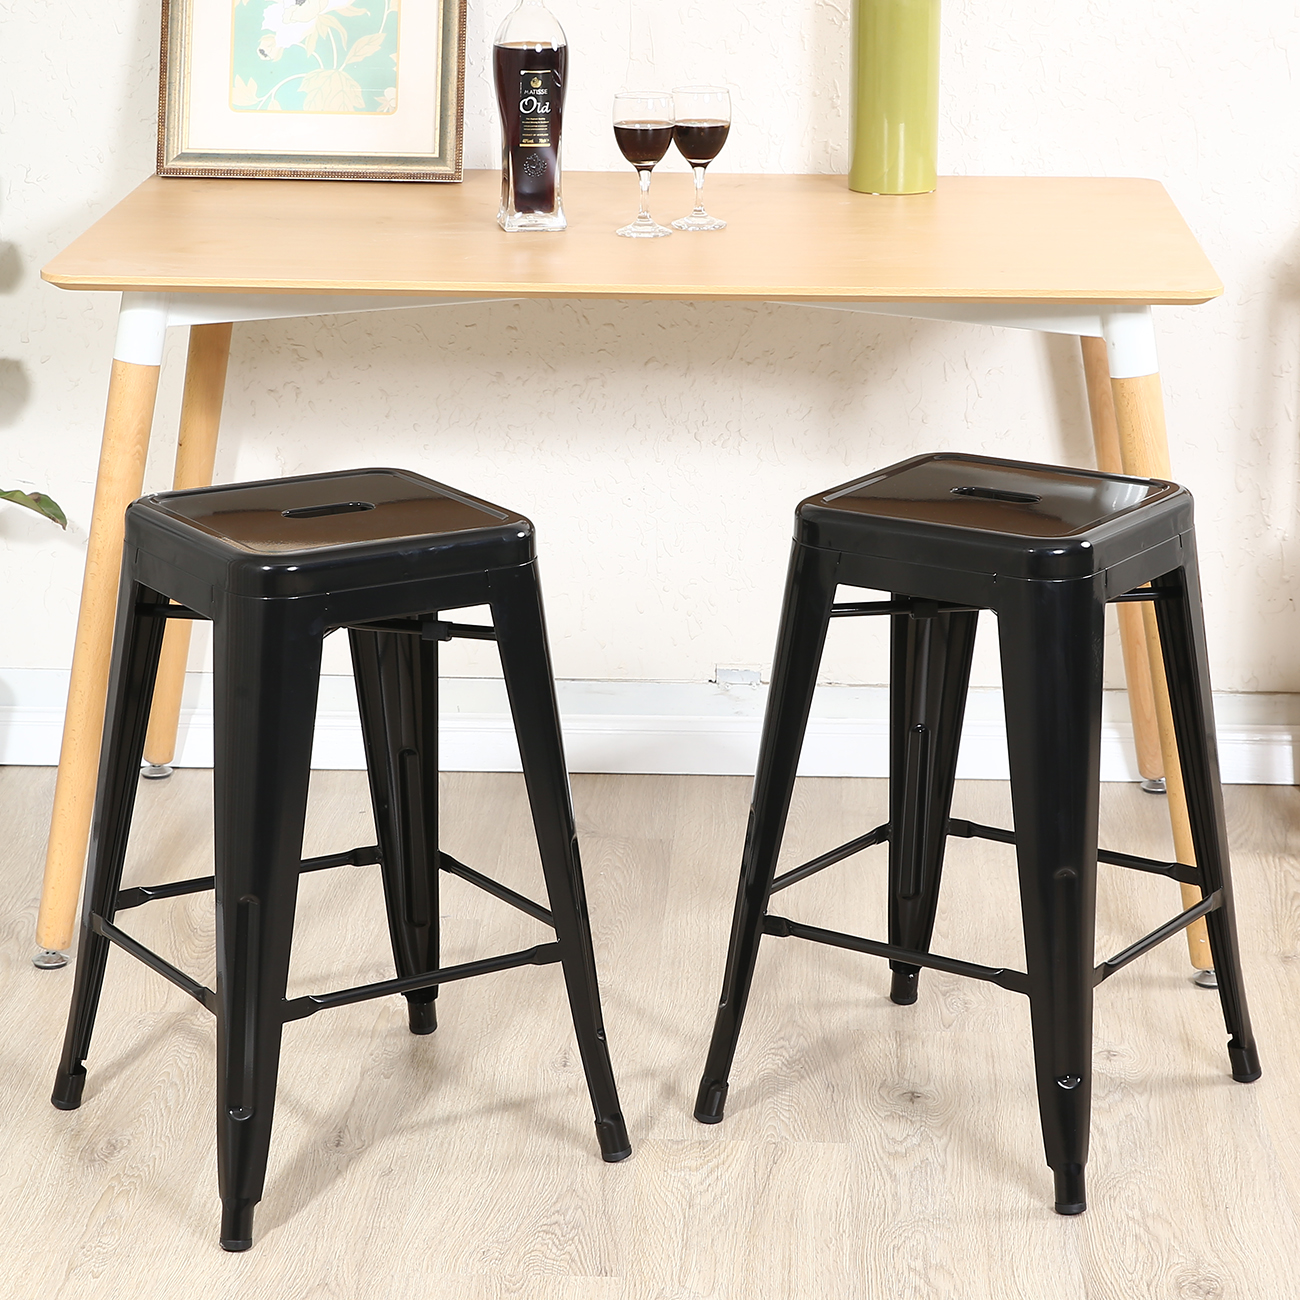 Set of 2 Metal Bar Stool Counter Height Home 24quot 26quot 30  : 014 hg 30024 bk 10 from www.ebay.com size 1300 x 1300 jpeg 1104kB